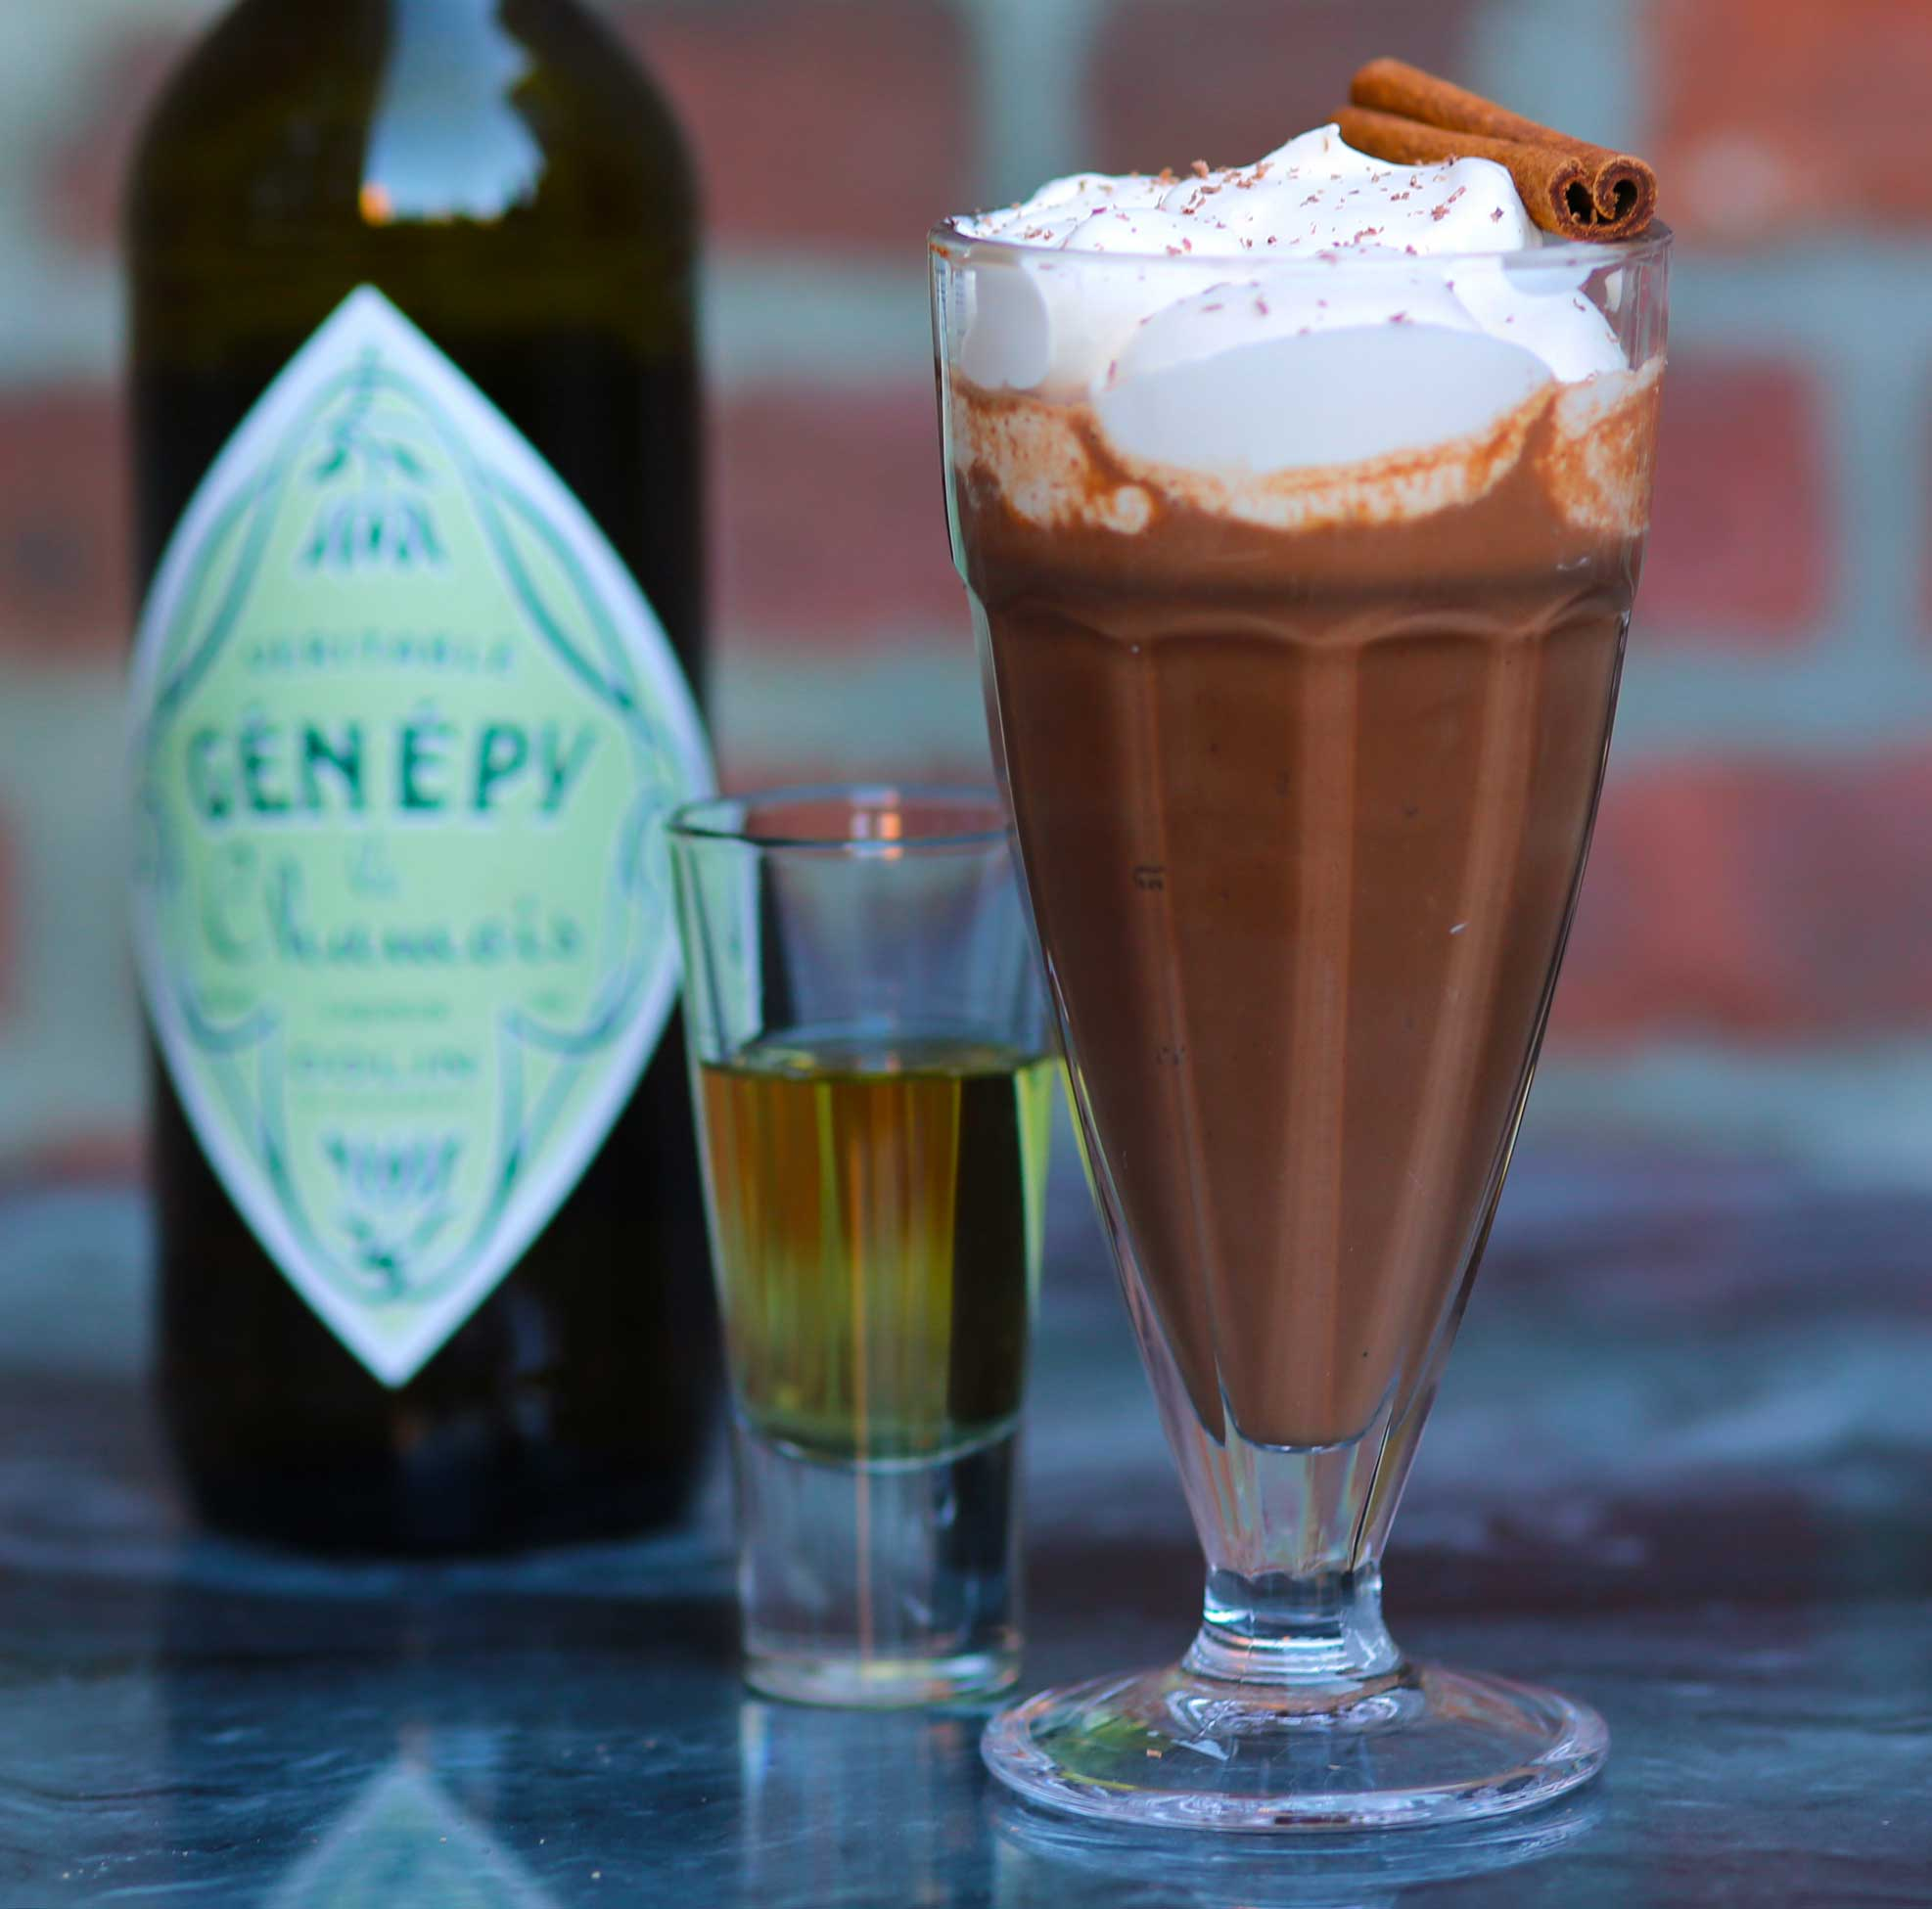 An example of the Verte Chaud No. 2, the mixed drink (cocktail), Adapted from a drink by Jamie Boudreau, Seattle, WA, featuring drinking chocolate, Dolin Génépy le Chamois Liqueur, and Nux Alpina Whipped Cream; photo by Lauren Clark